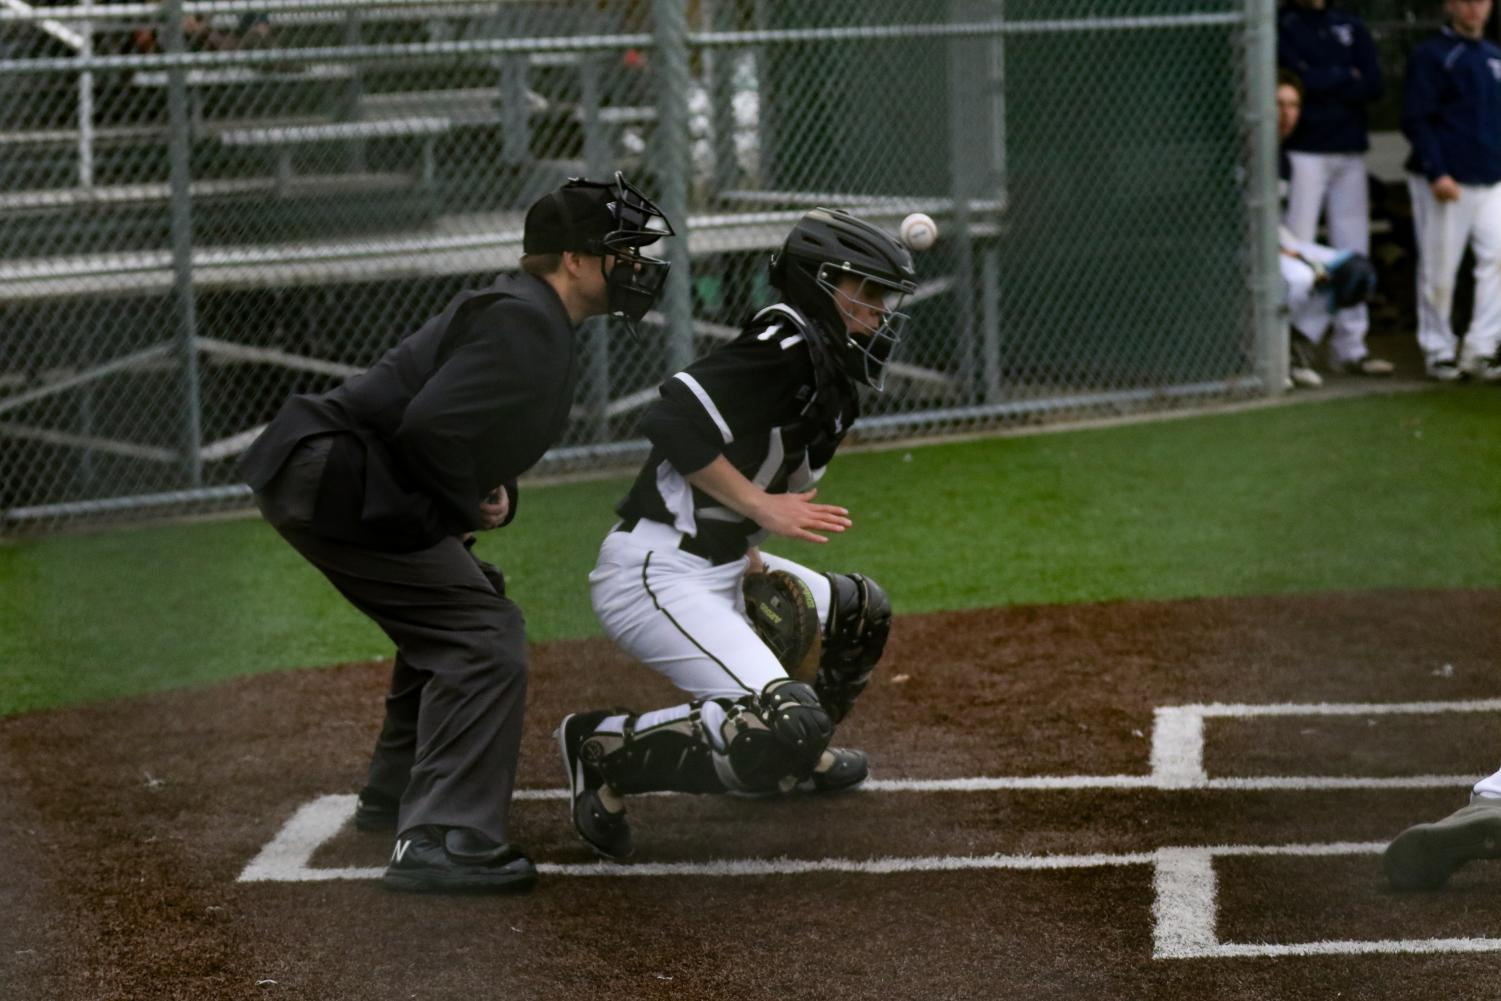 Haedyn+Wendt+is+hit+by+a+baseball+in+the+game+against+Arlington.